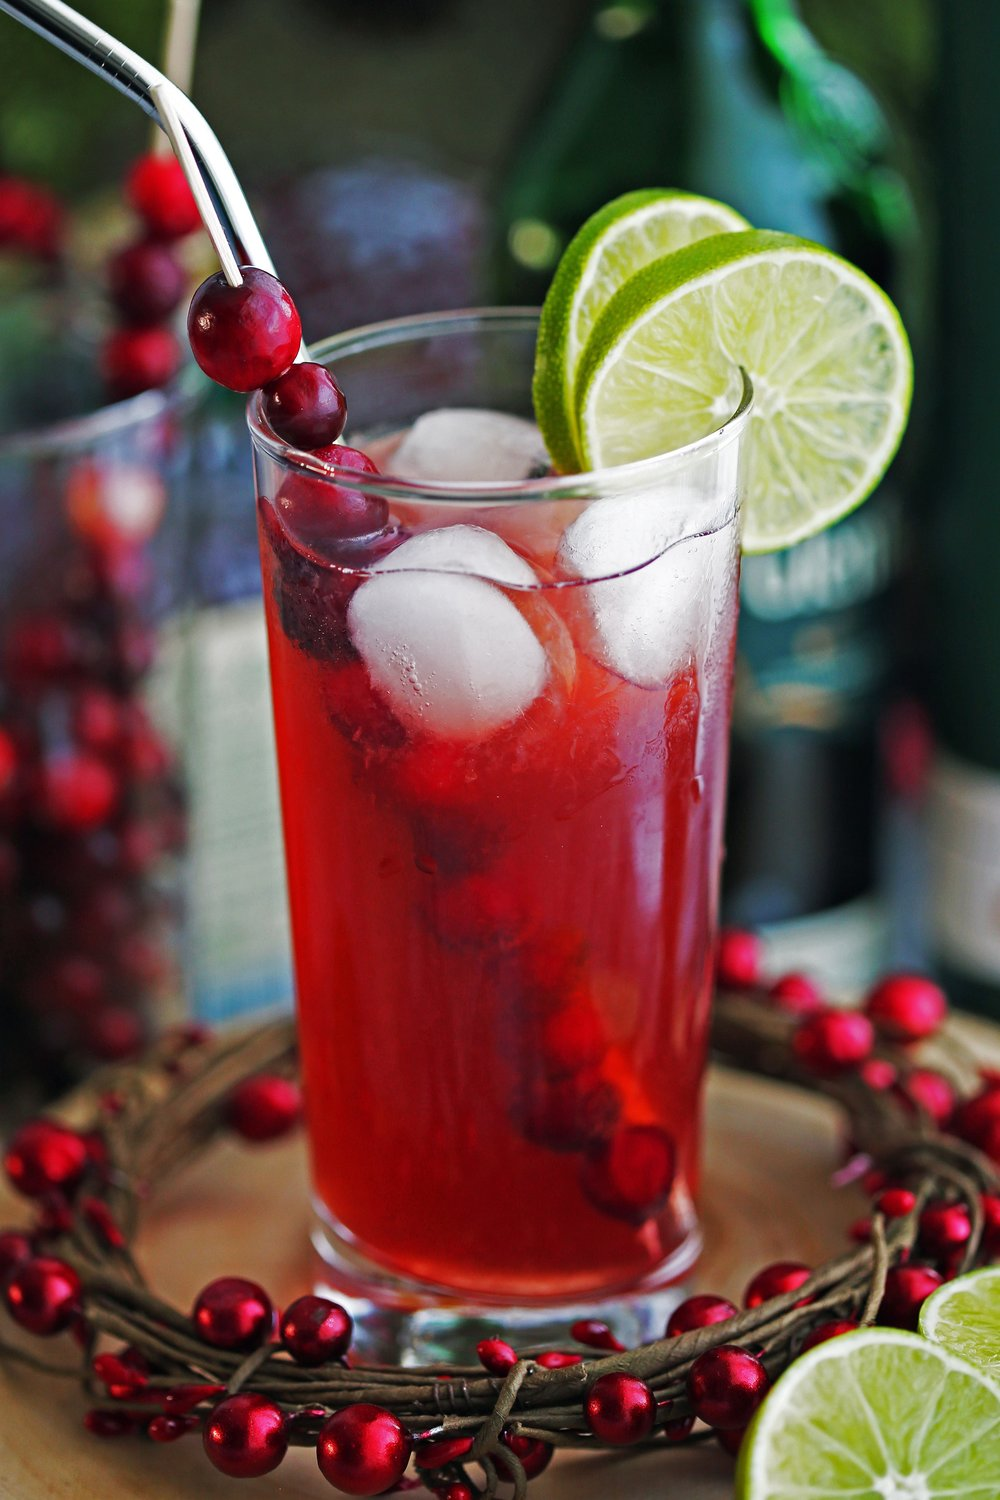 Cranberry Whiskey Ginger Cocktail in a tall highball glass with lime slices, fresh cranberries, ice cubes, and a stainless steel straw in it.